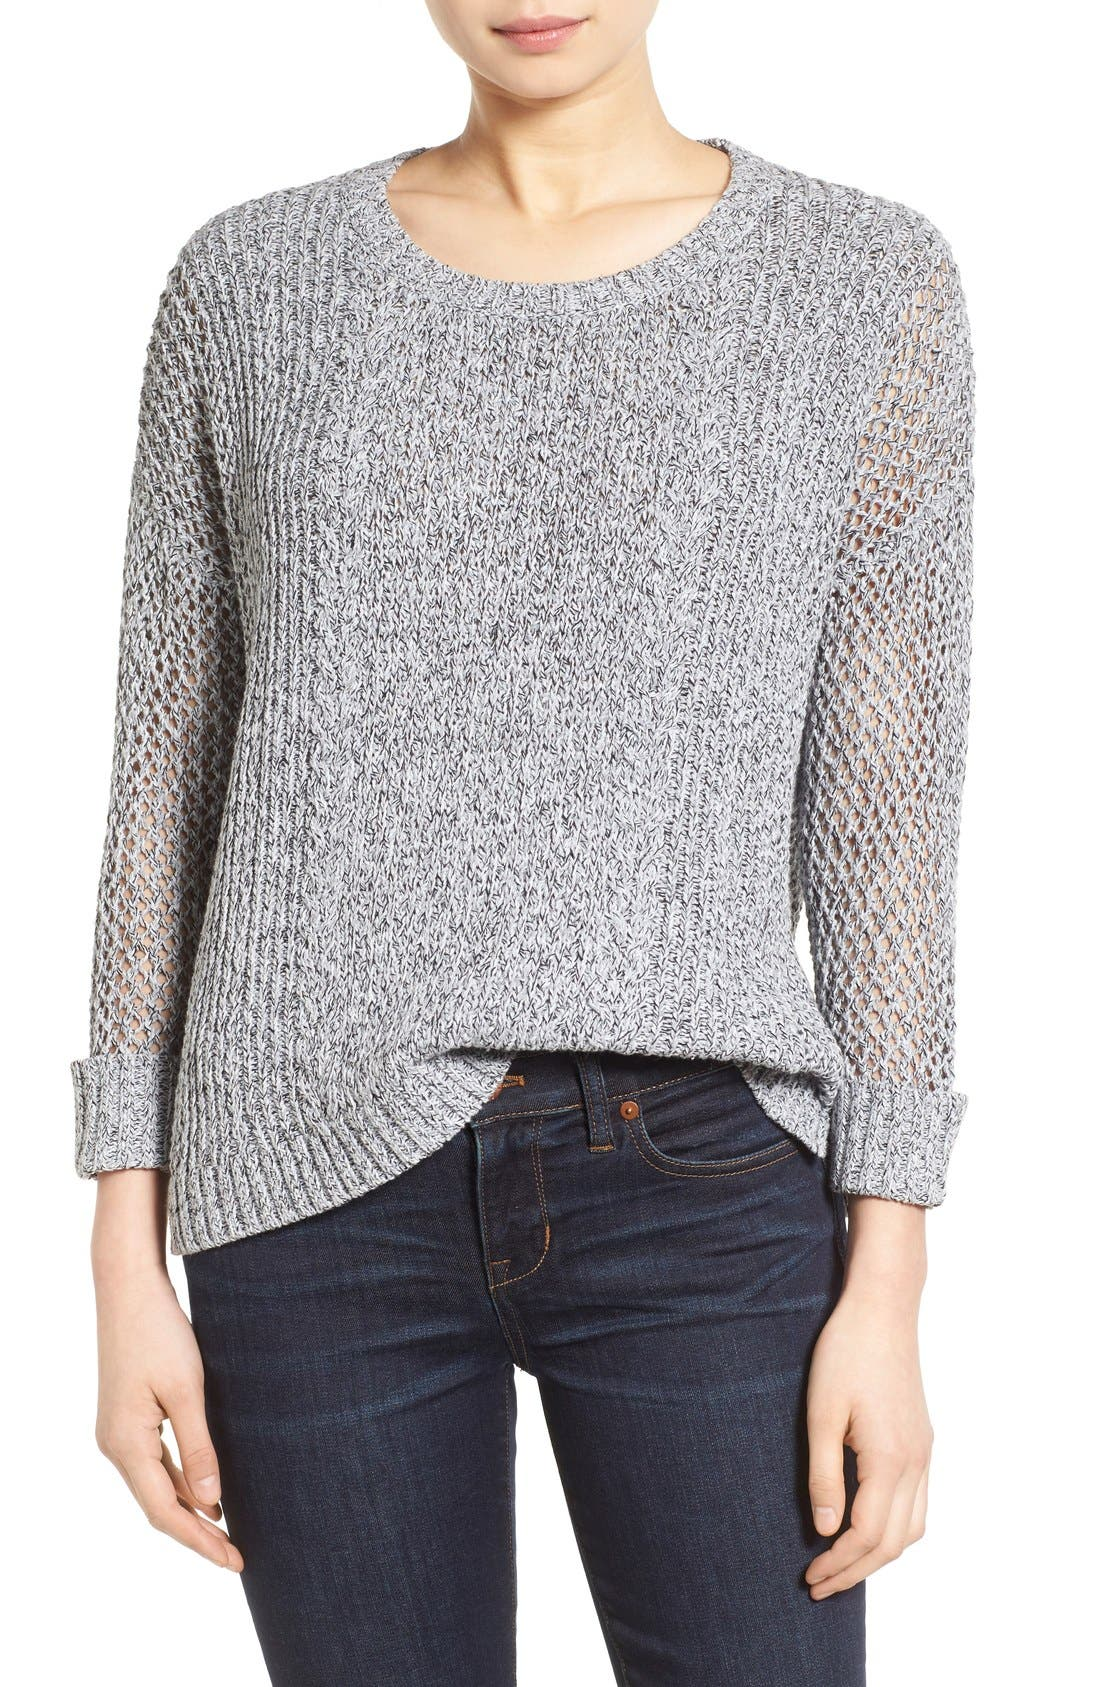 Main Image - Madewell 'Karlie' Cable Knit Sweater